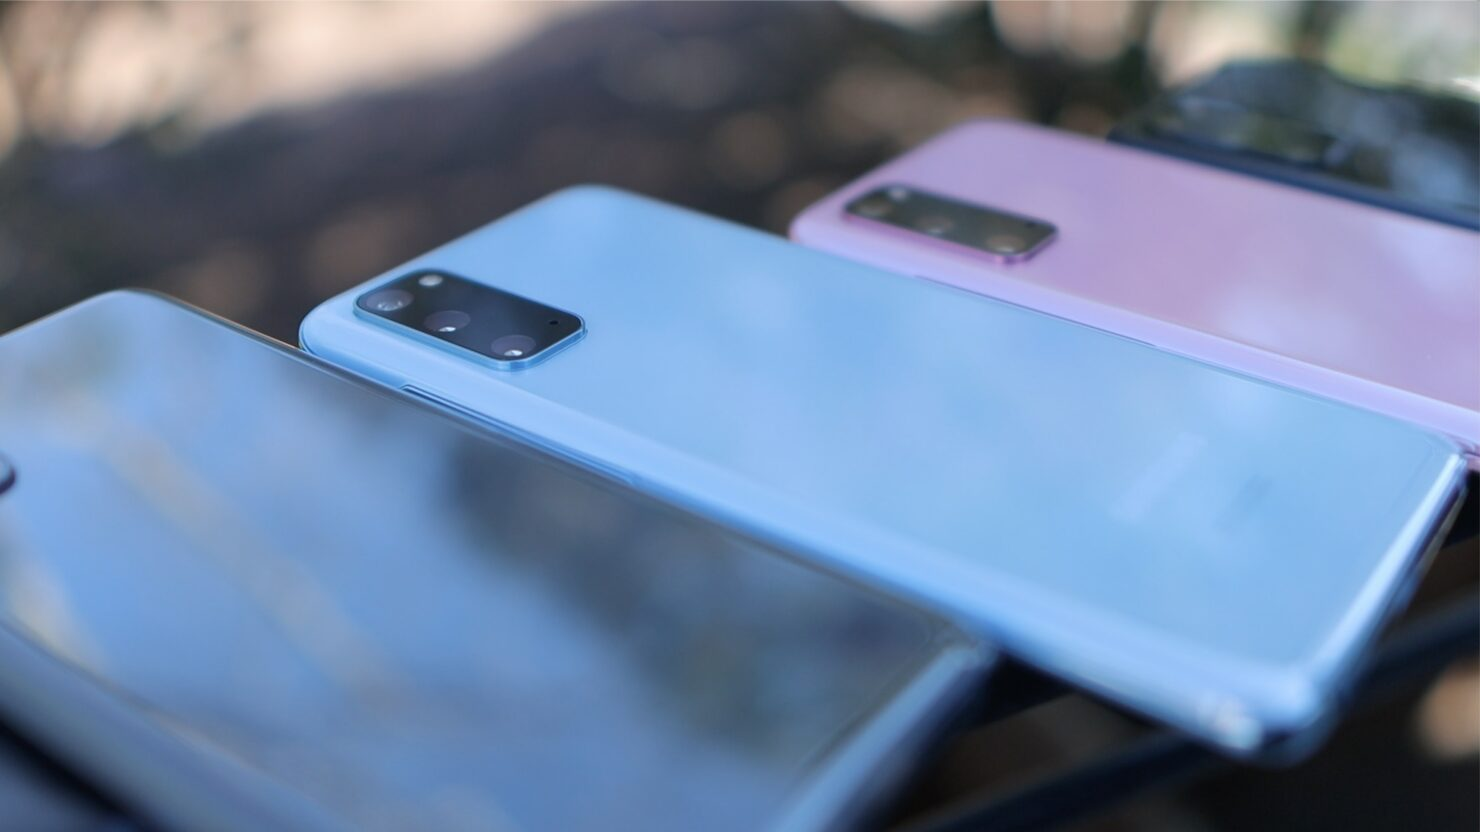 Samsung Expects the Galaxy S21 FE to Not Sell That Well